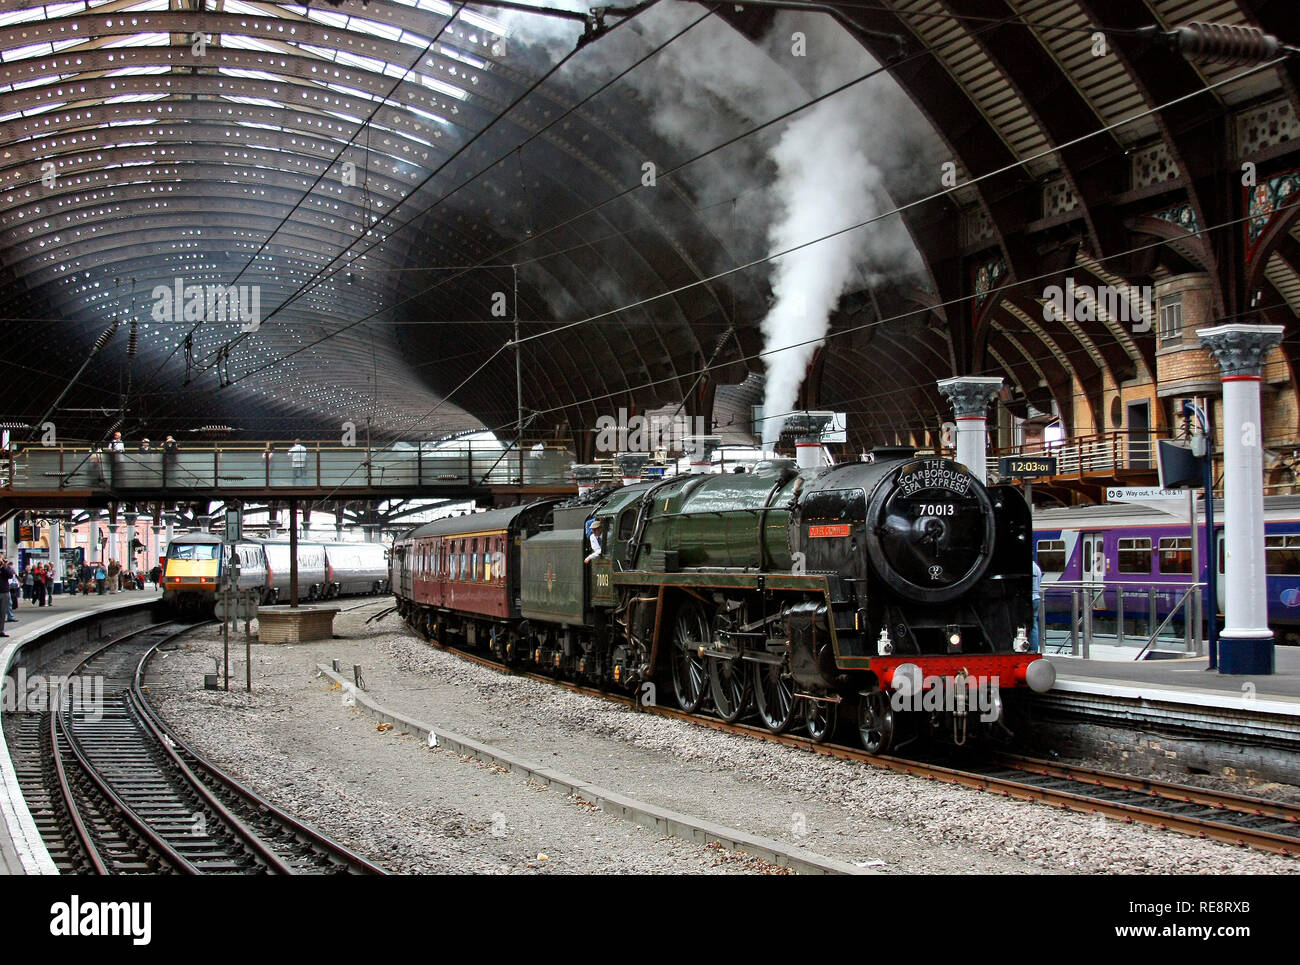 70013 Oliver Cromwell waits at York with the Scarborough Spa Express. - Stock Image